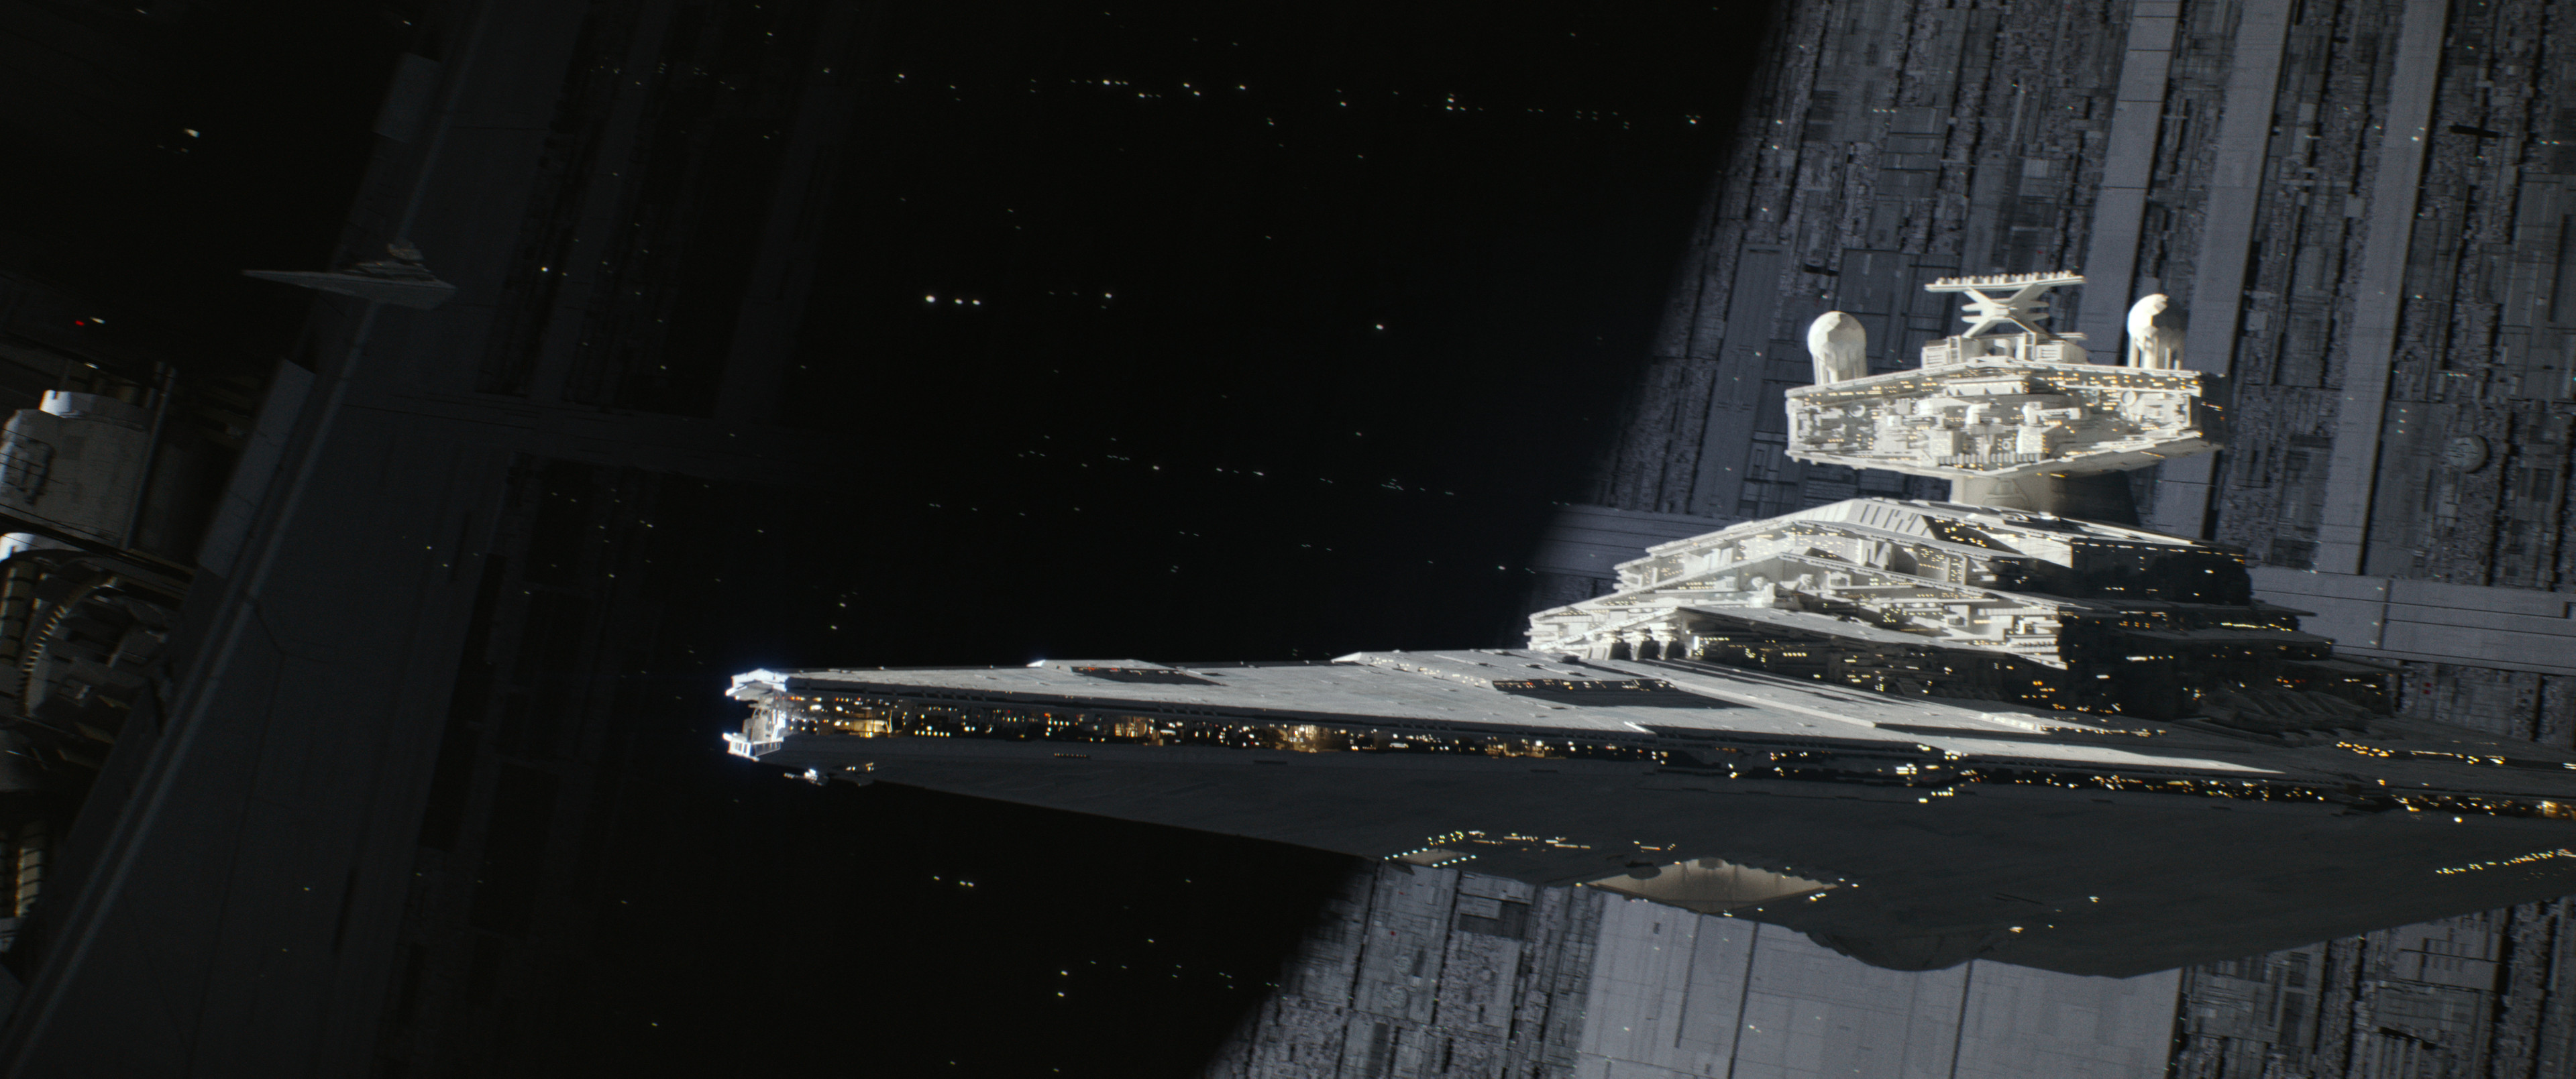 The classic Star destroyer